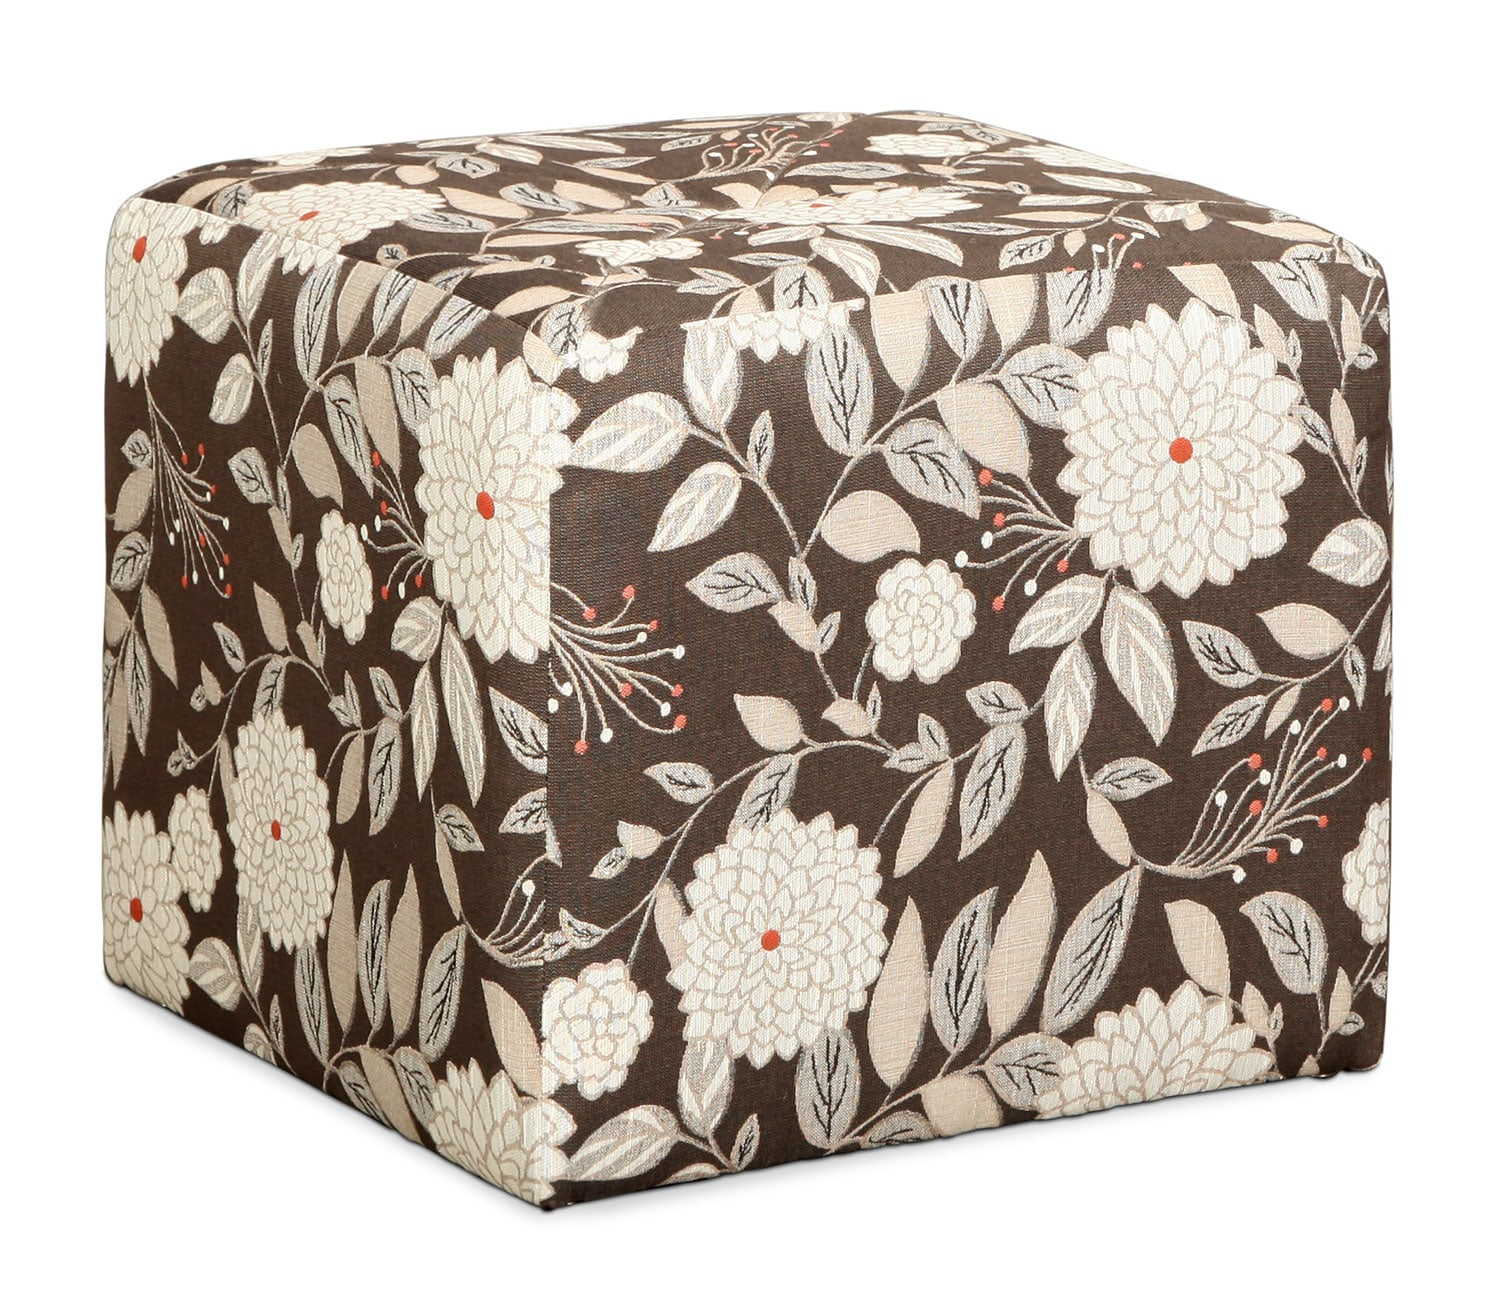 Harding Cube Ottoman - Floral